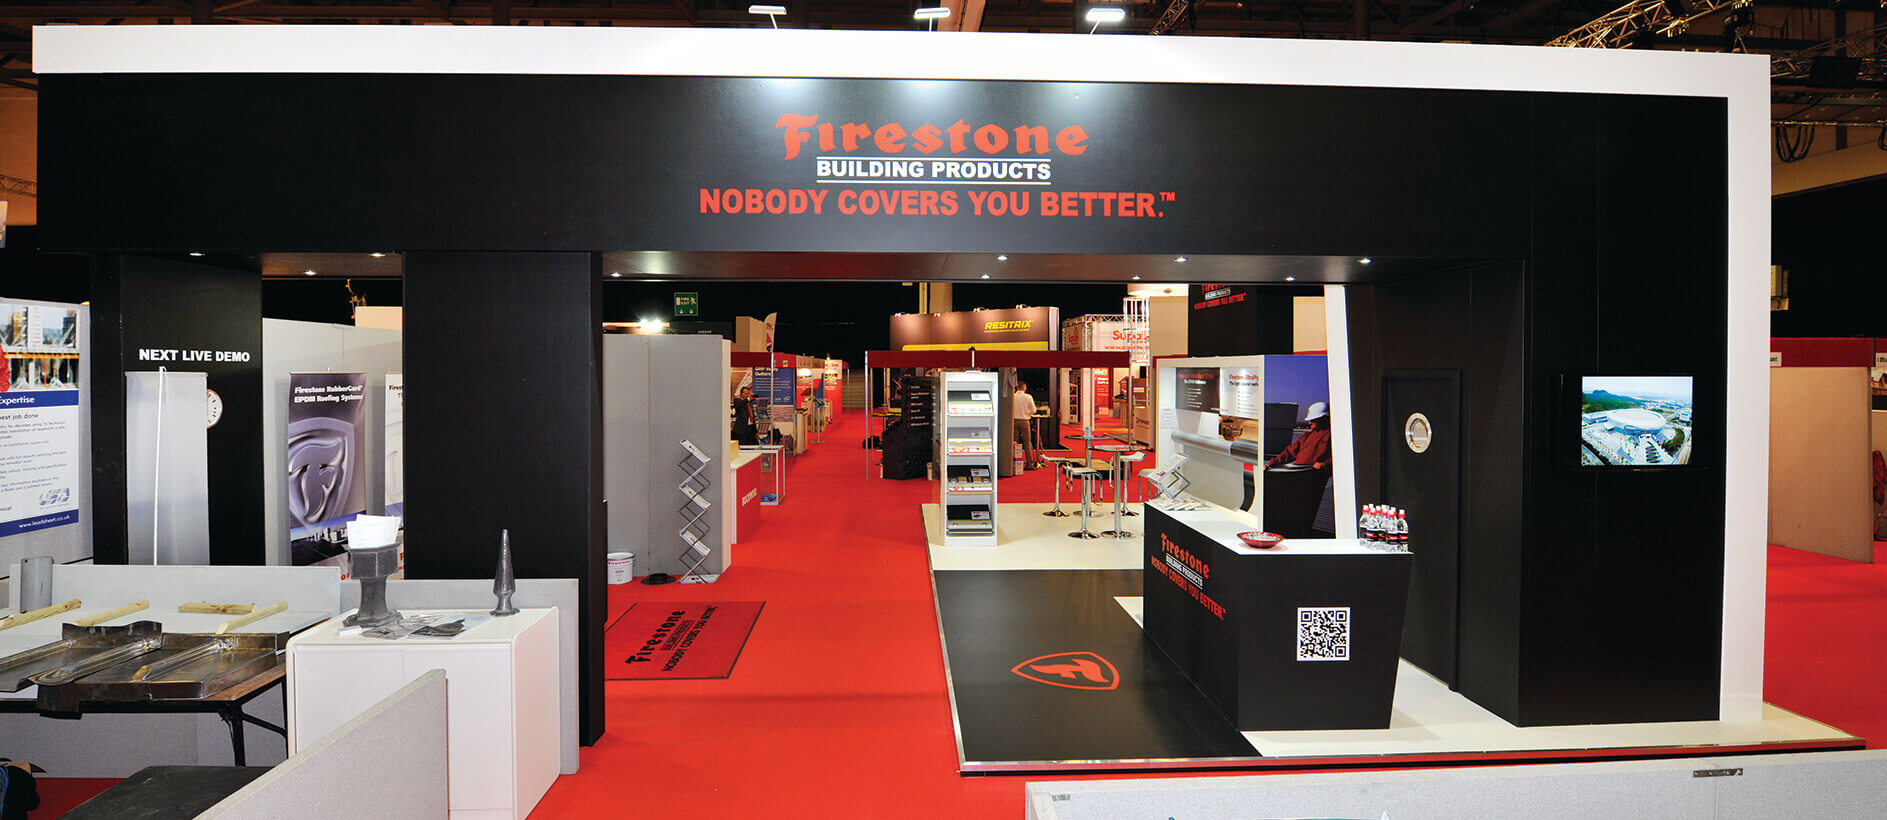 Bespoke exhibition stand design by Exhibit 3Sixty